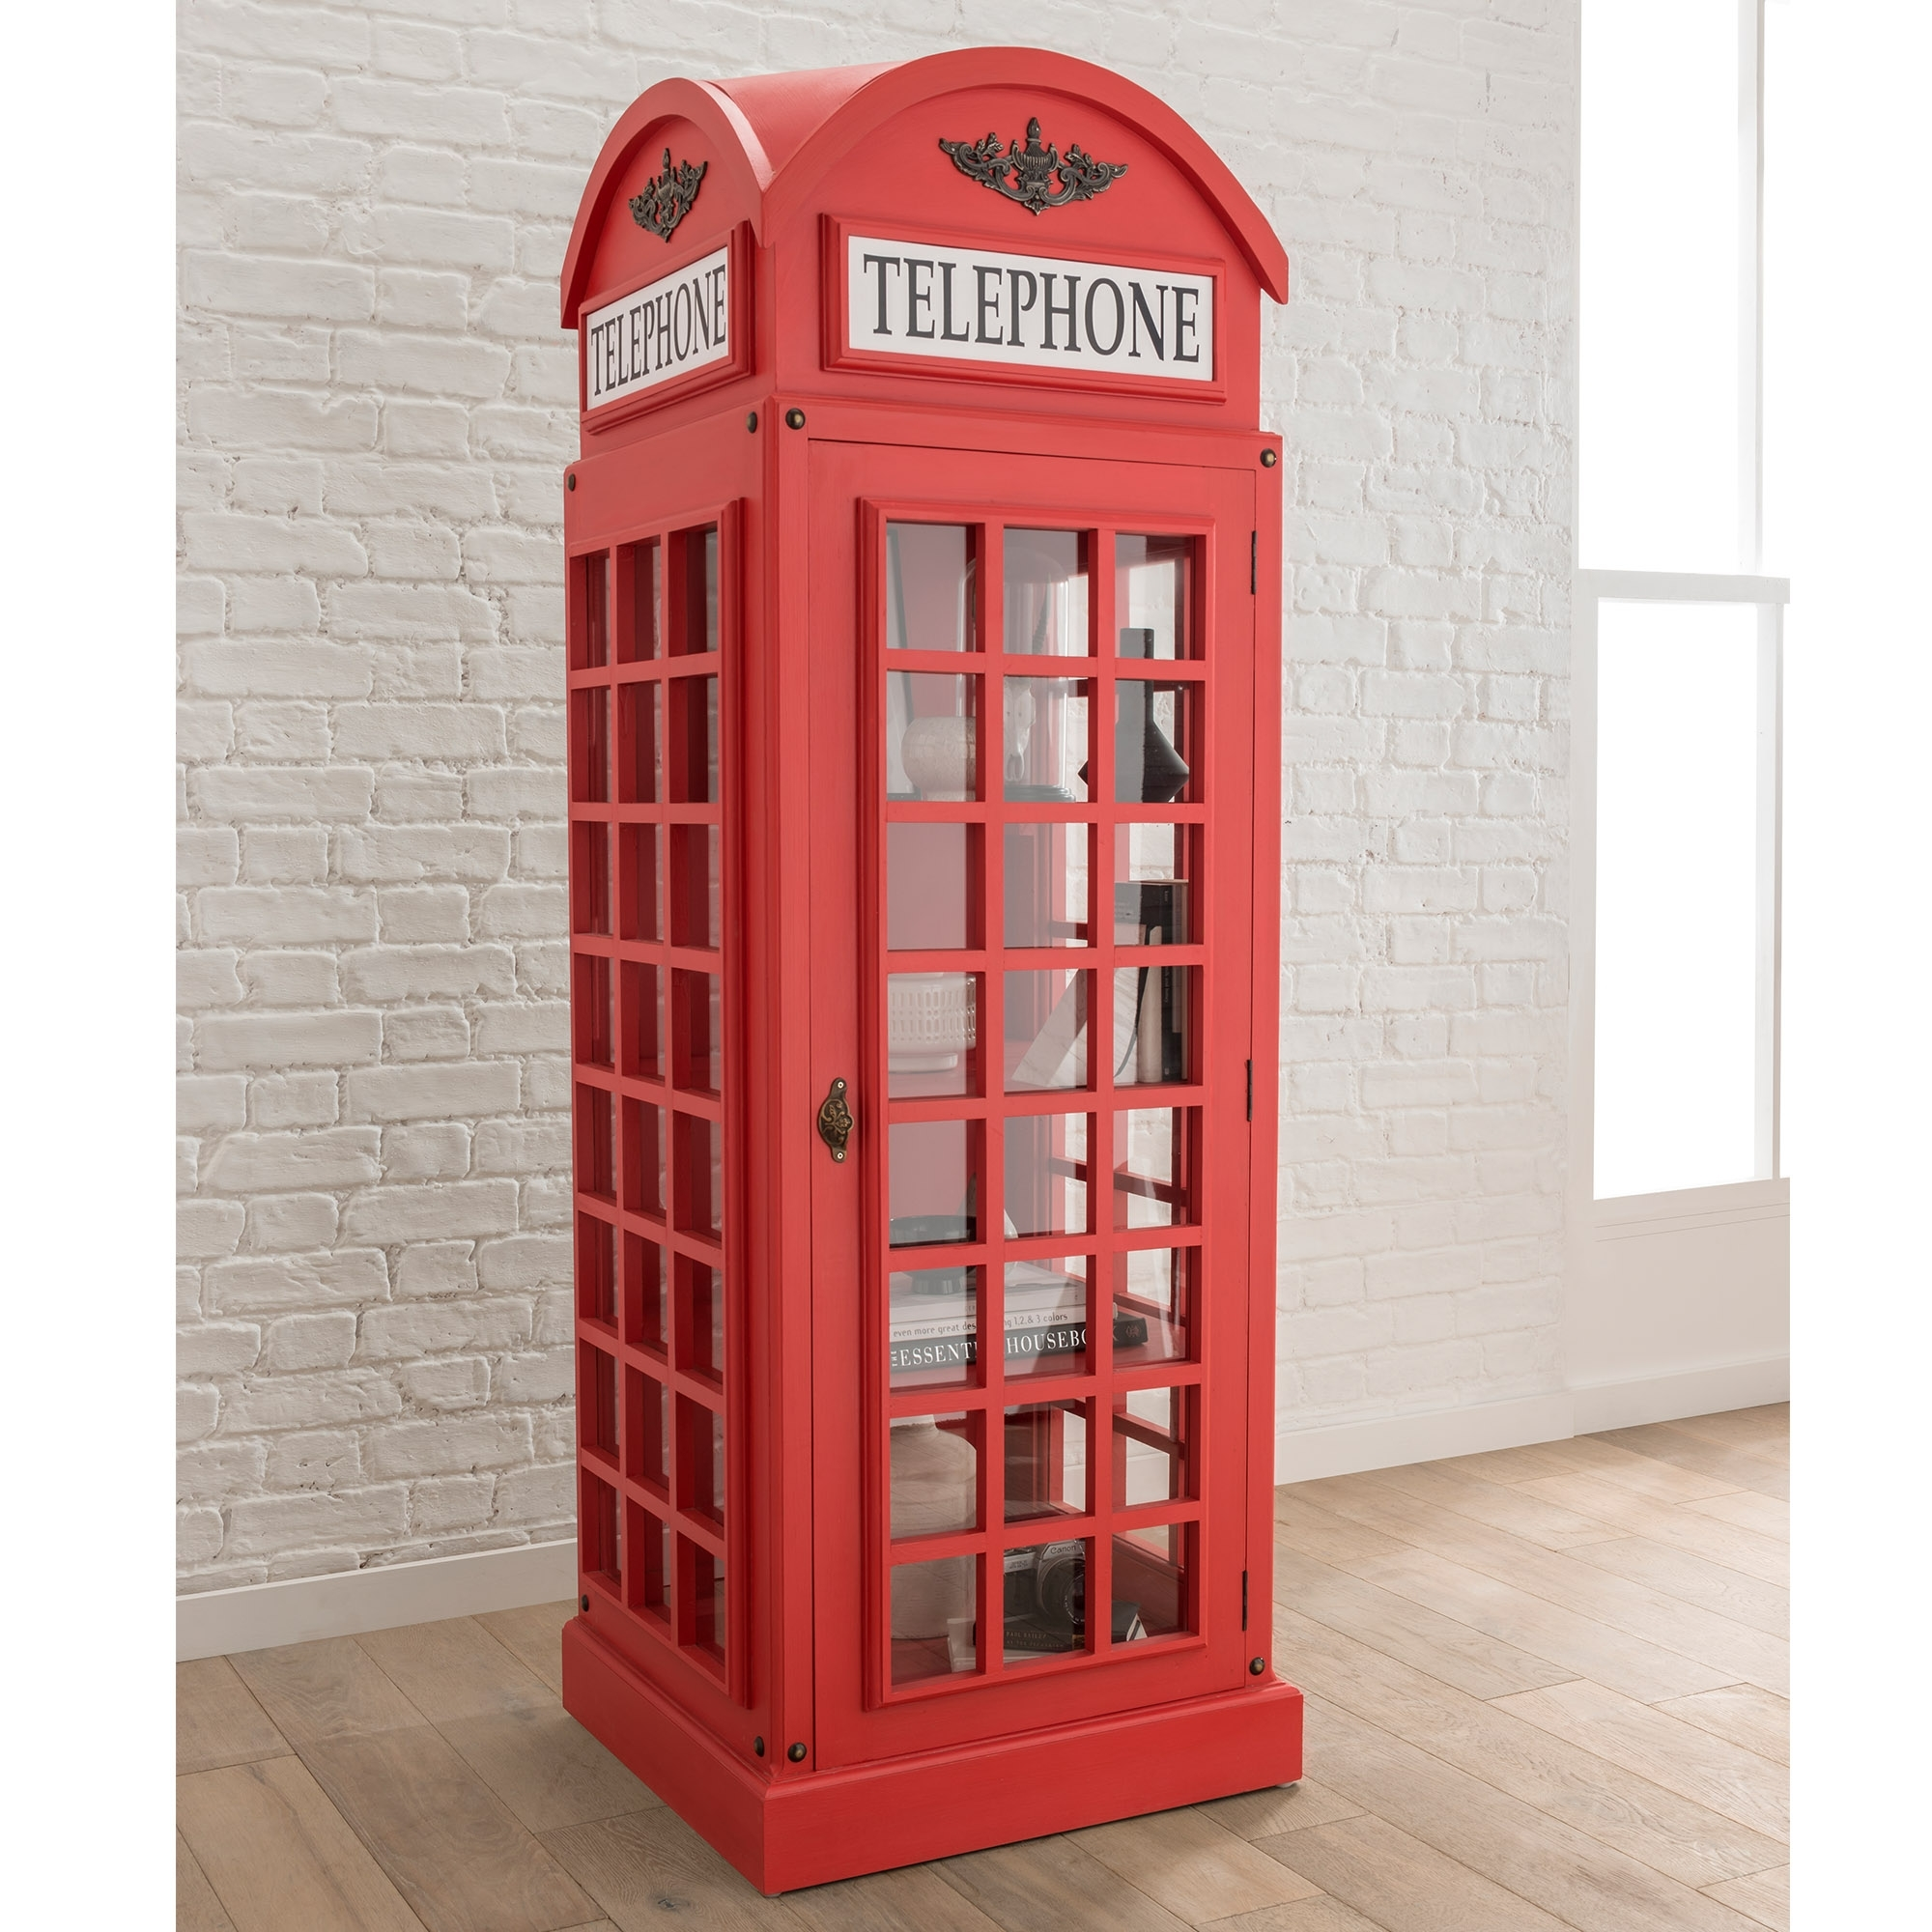 Display Cabinet In A Telephone Box Style Display Cabinets